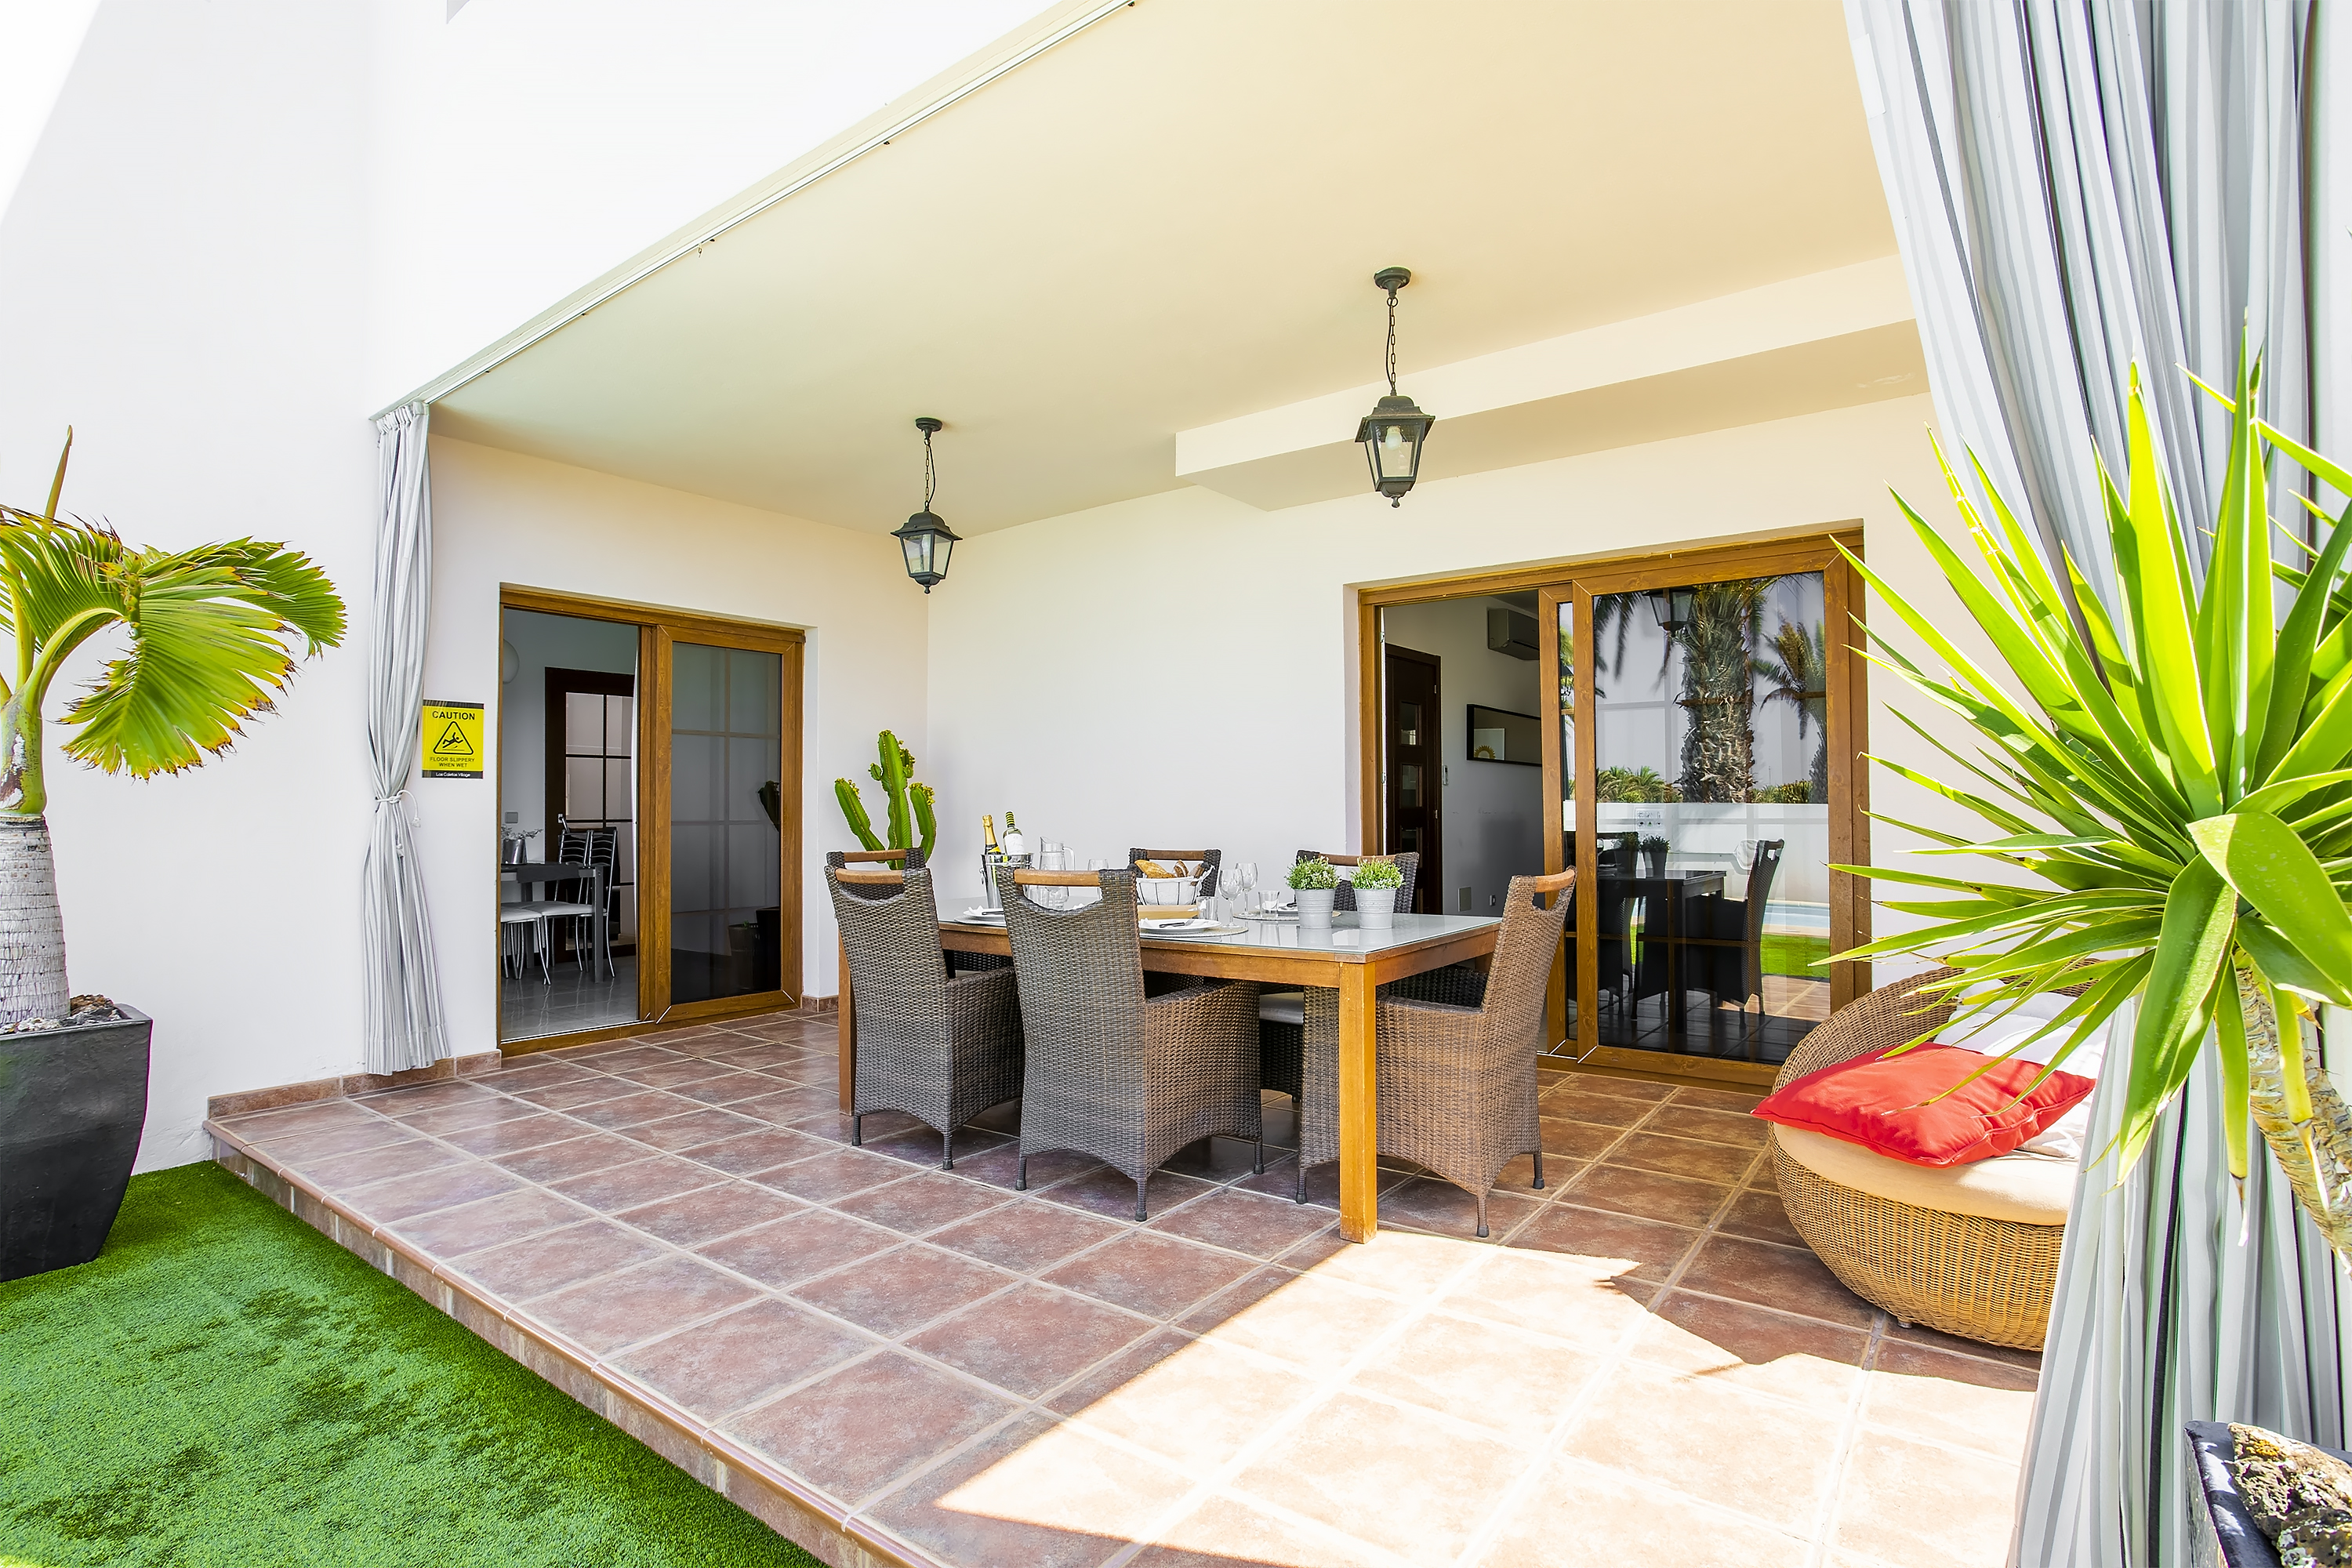 Villa in Costa Teguise to rent